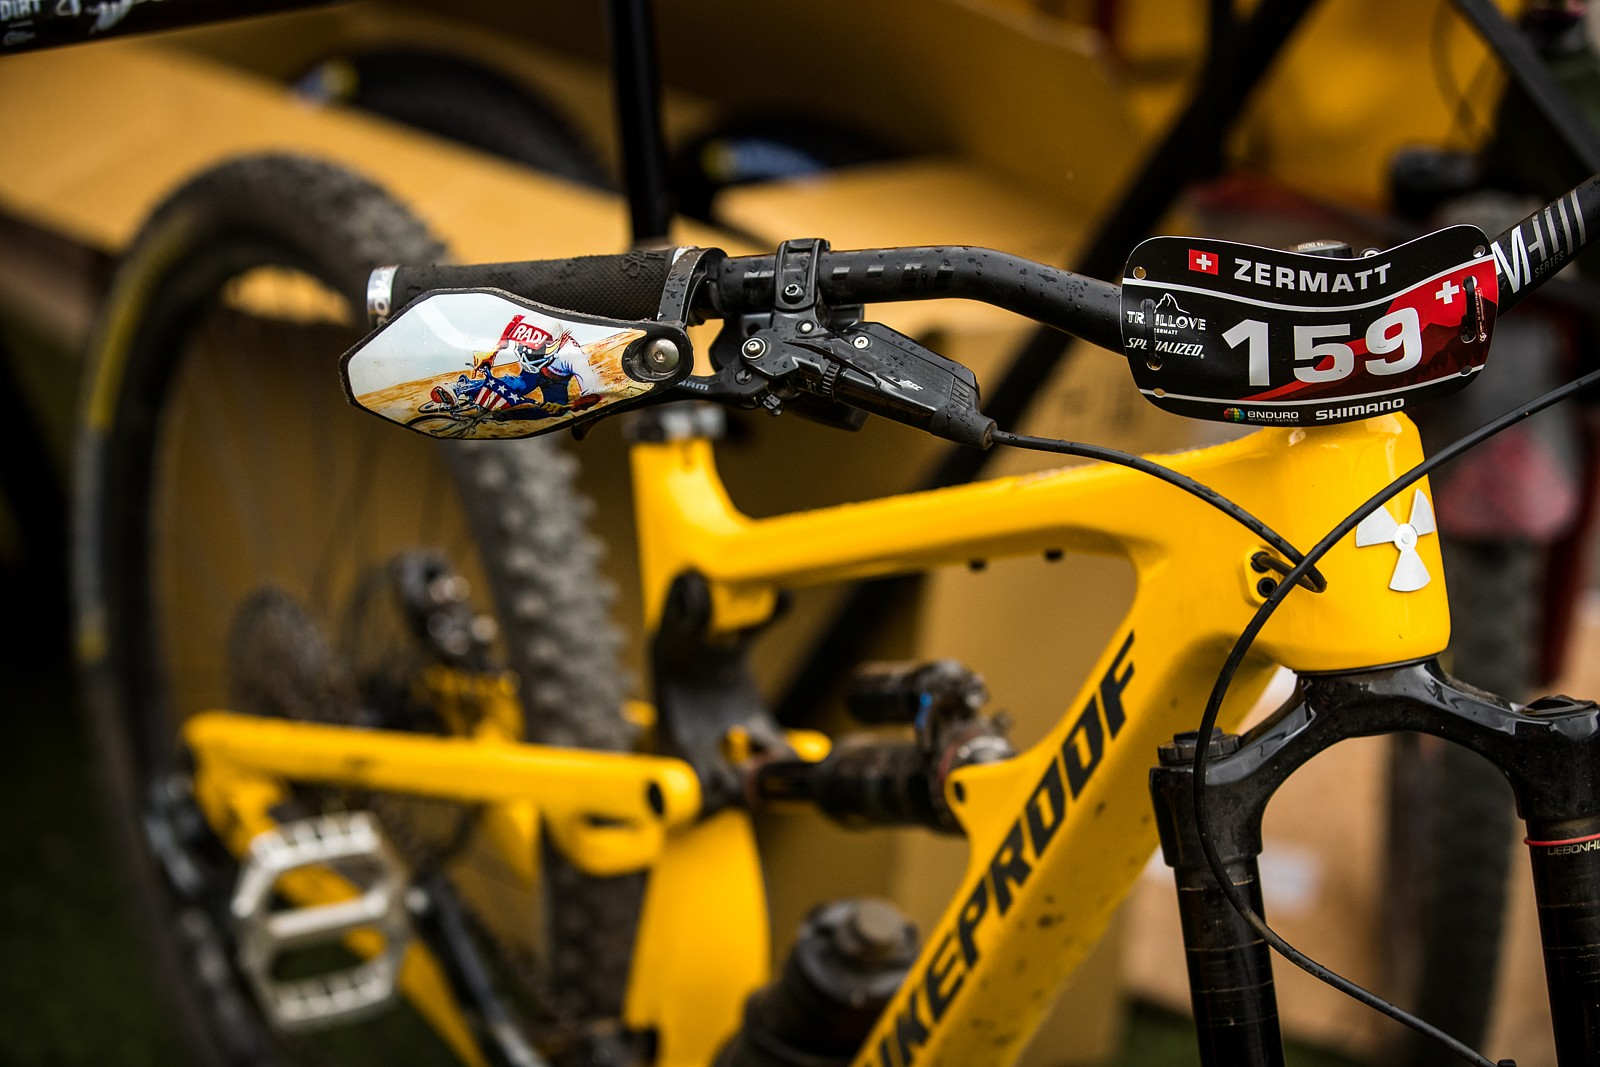 PIT BITS - EWS Zermatt - A New Nukeproof? - PIT BITS - Enduro World Series, Zermatt - Mountain Biking Pictures - Vital MTB